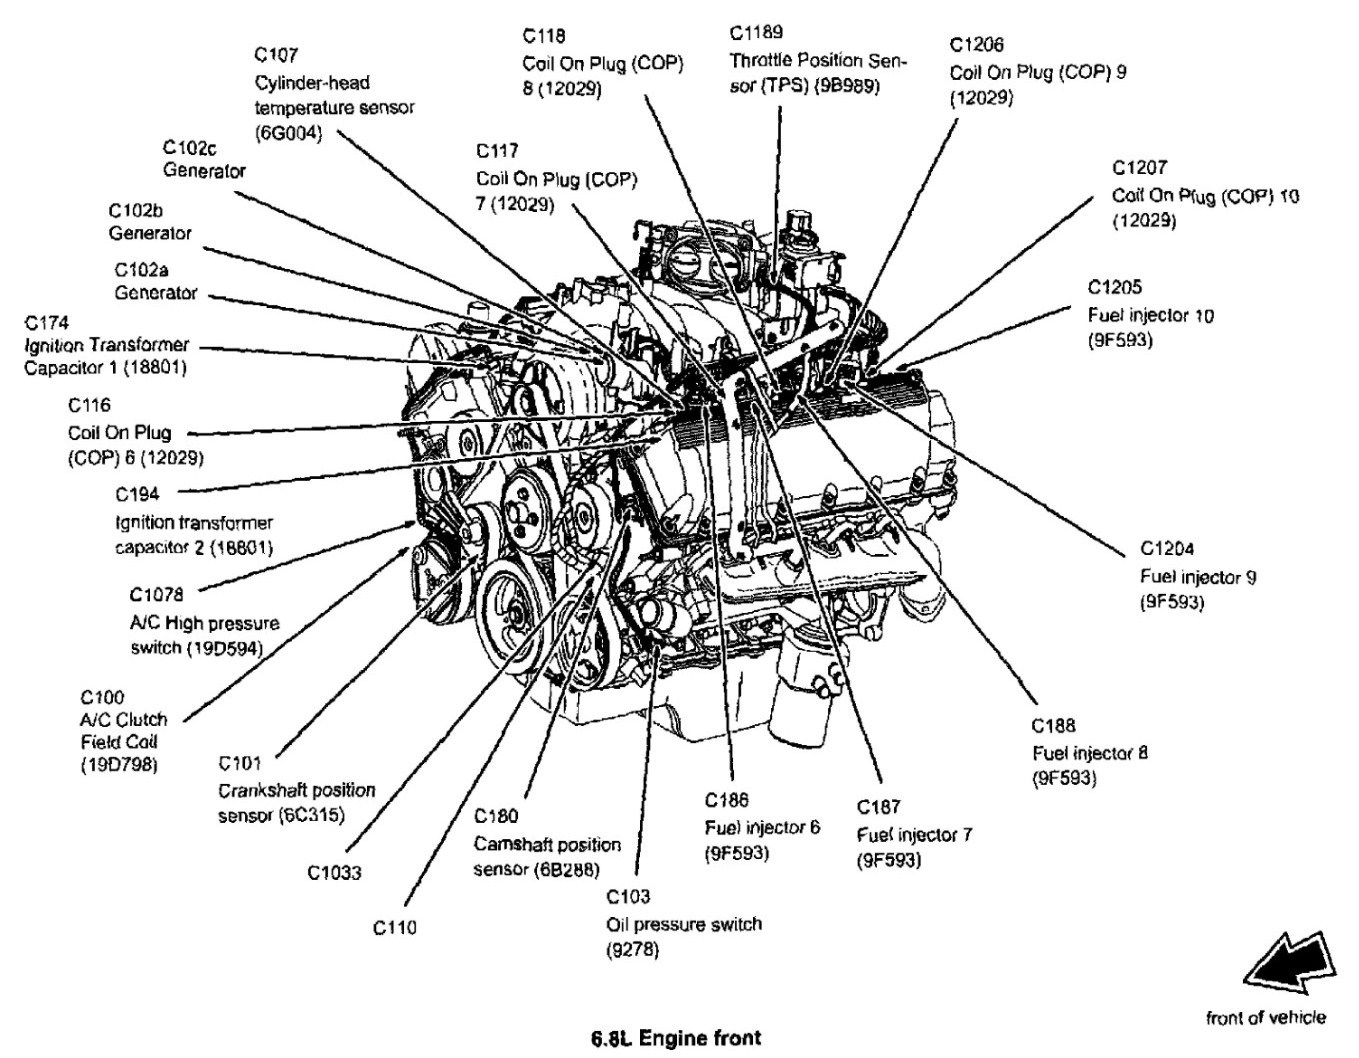 Kd_6274] Dodge 360 Firing Order Diagram Is The Other Firing